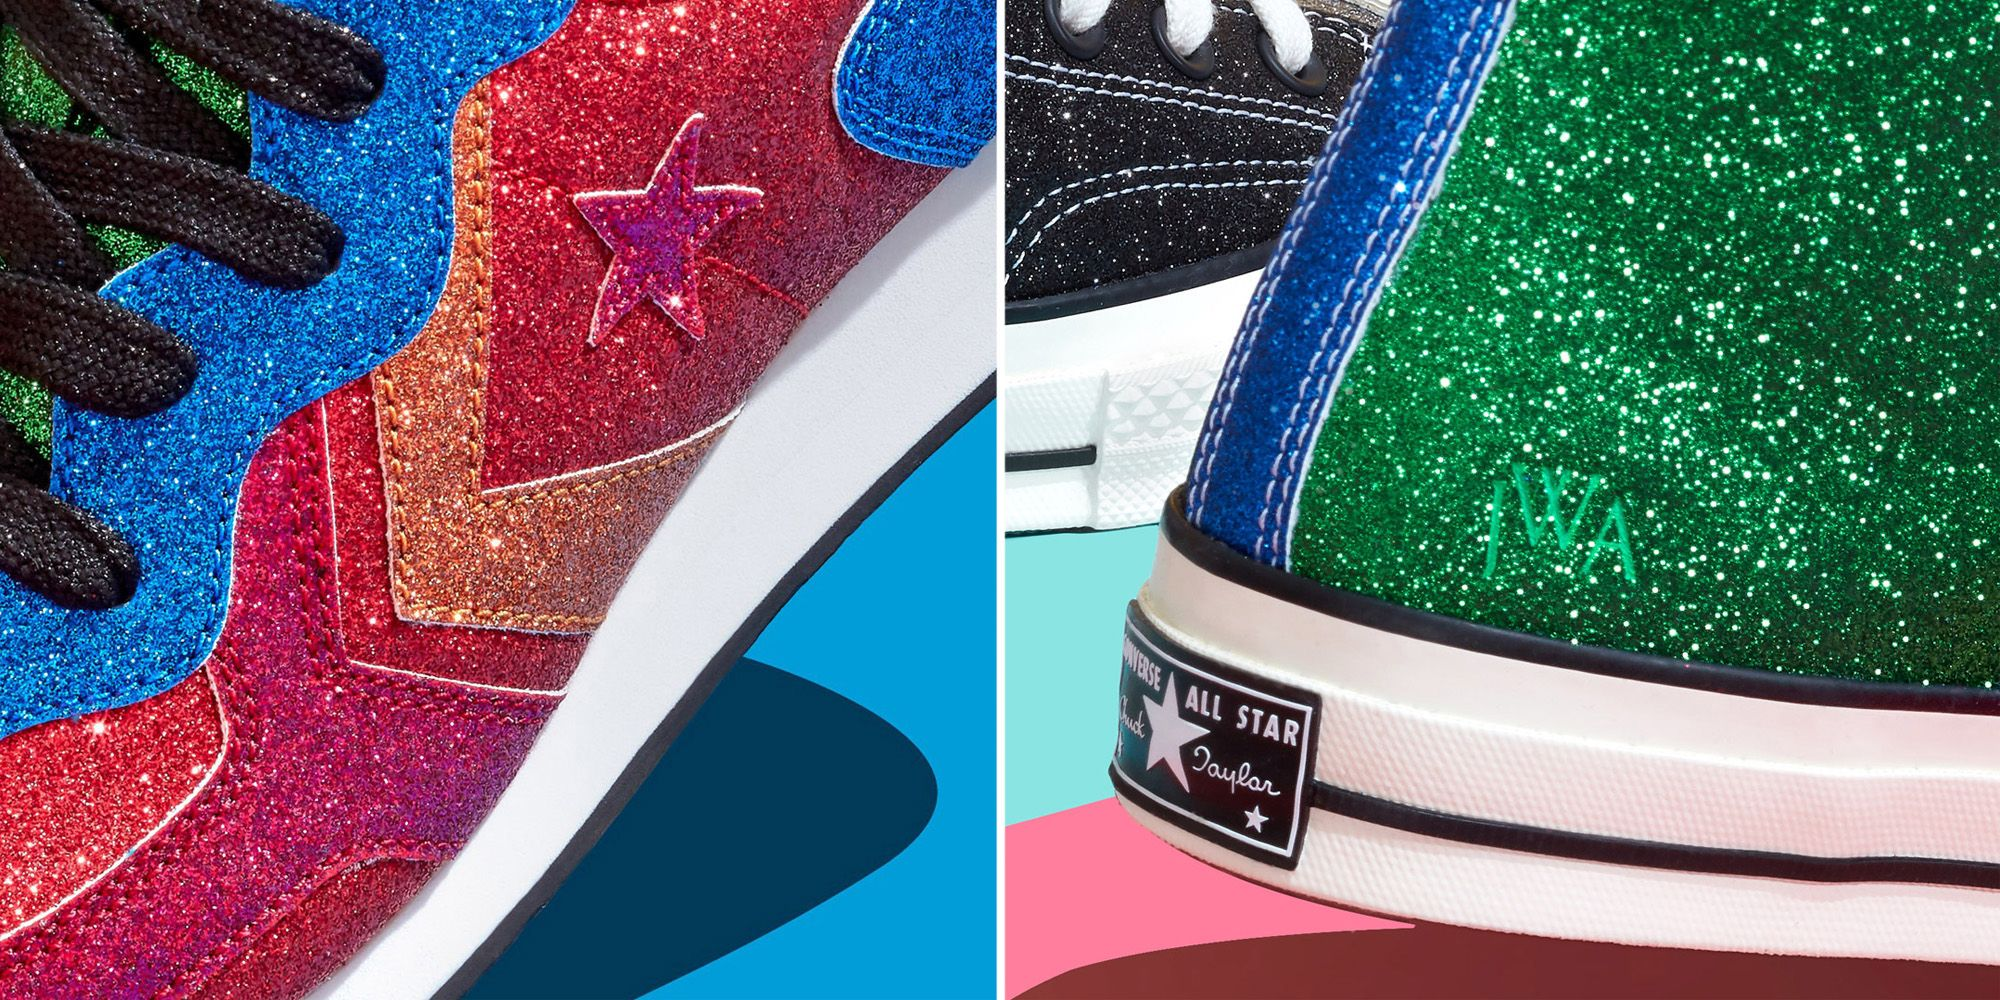 Https Fashion Week A9598252 Flash  Olivia Sneakers Ivory 38 Hbz Converse Index 1497555700